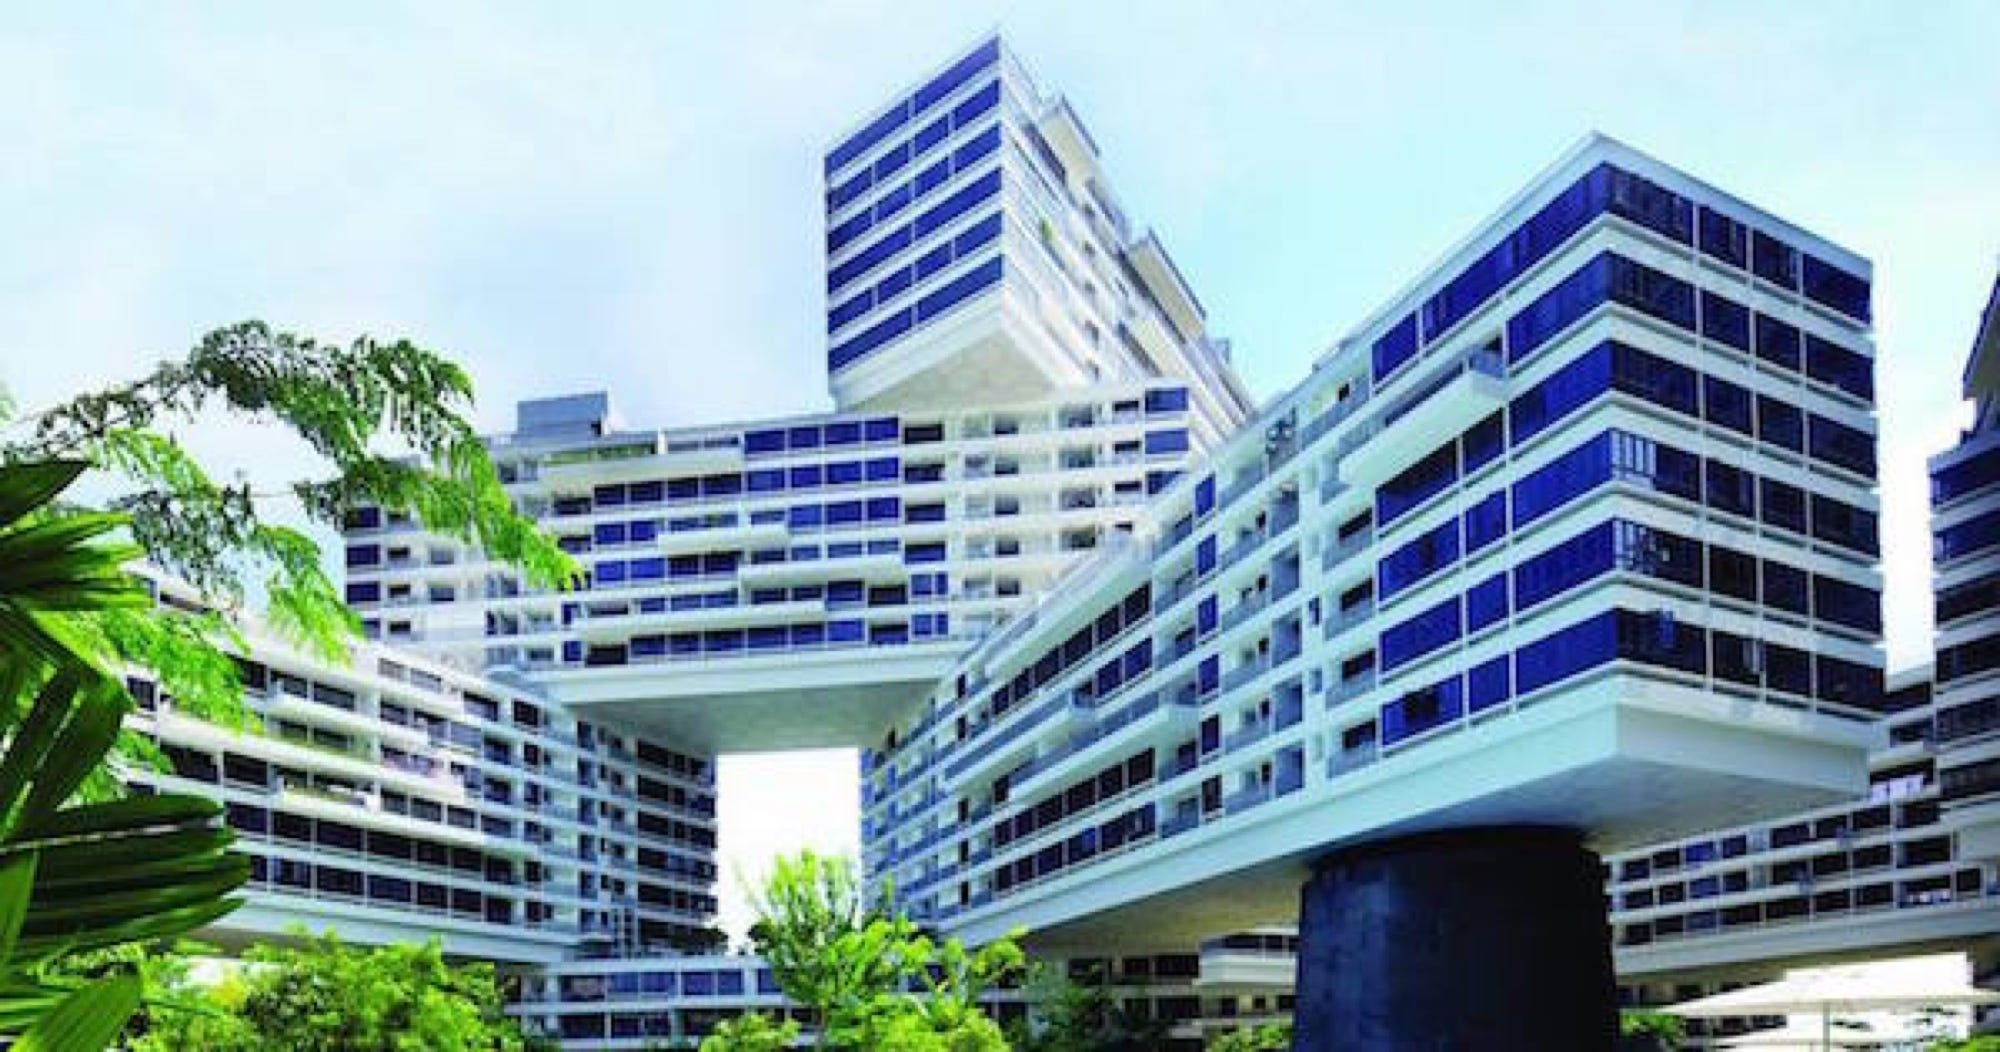 Singapore Interlace Apartment Complex Top Building